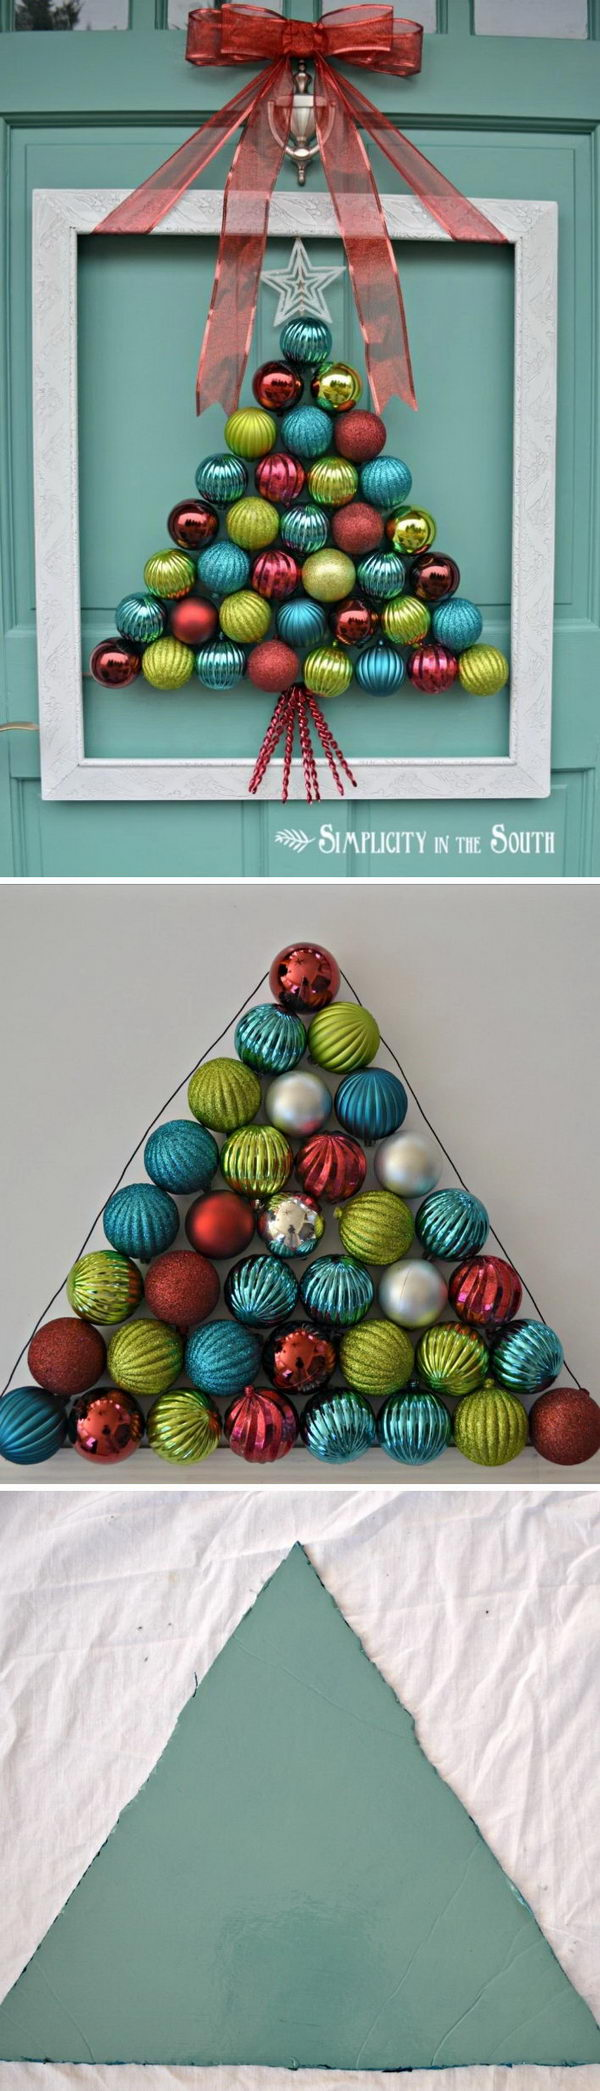 framed christmas tree ornament wreath - 2017 Christmas Decorating Ideas